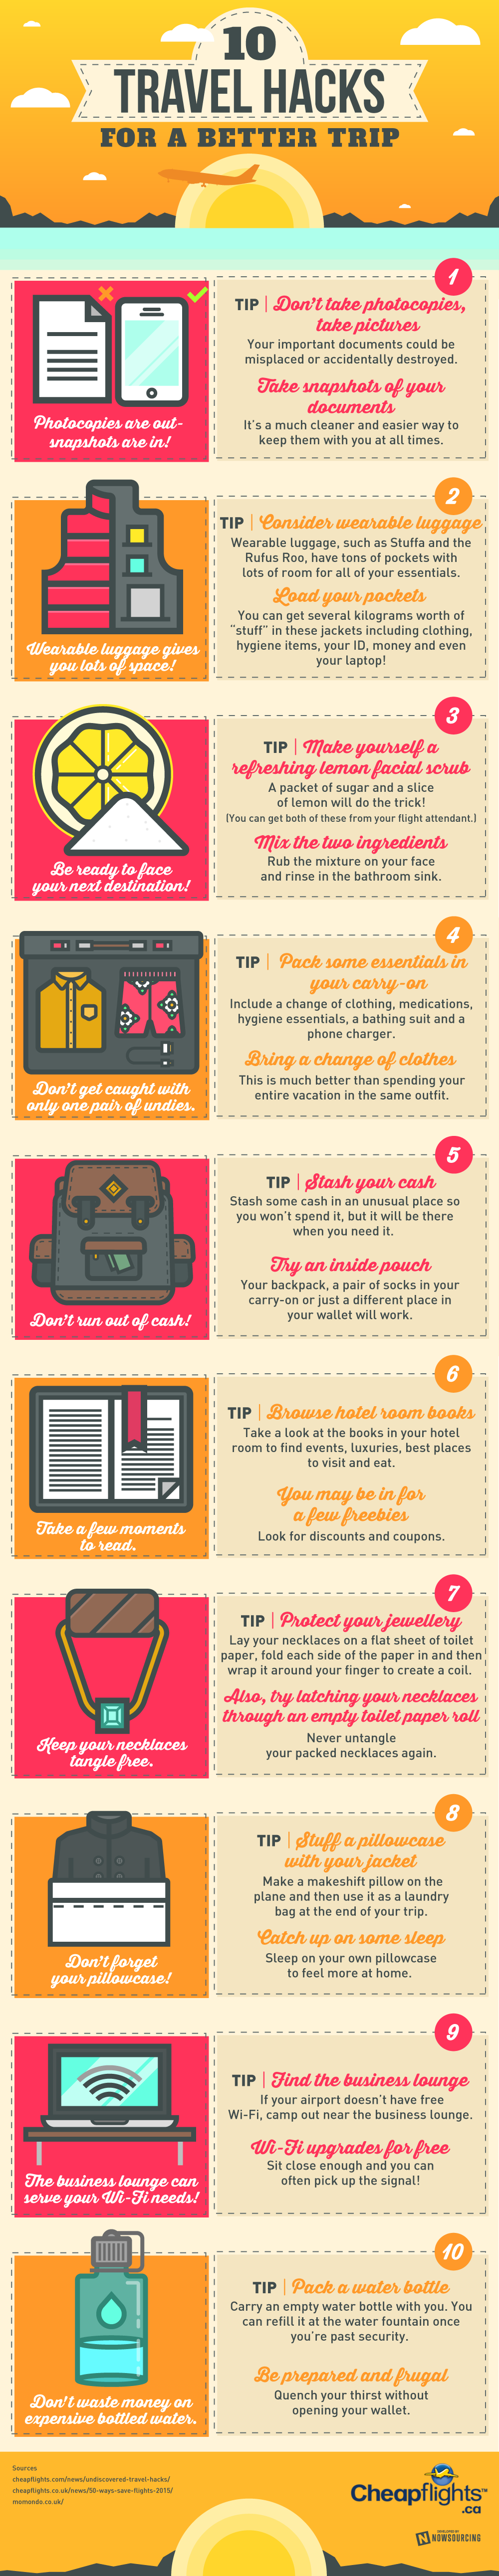 Top 10 Travel Hacks For A Better Trip